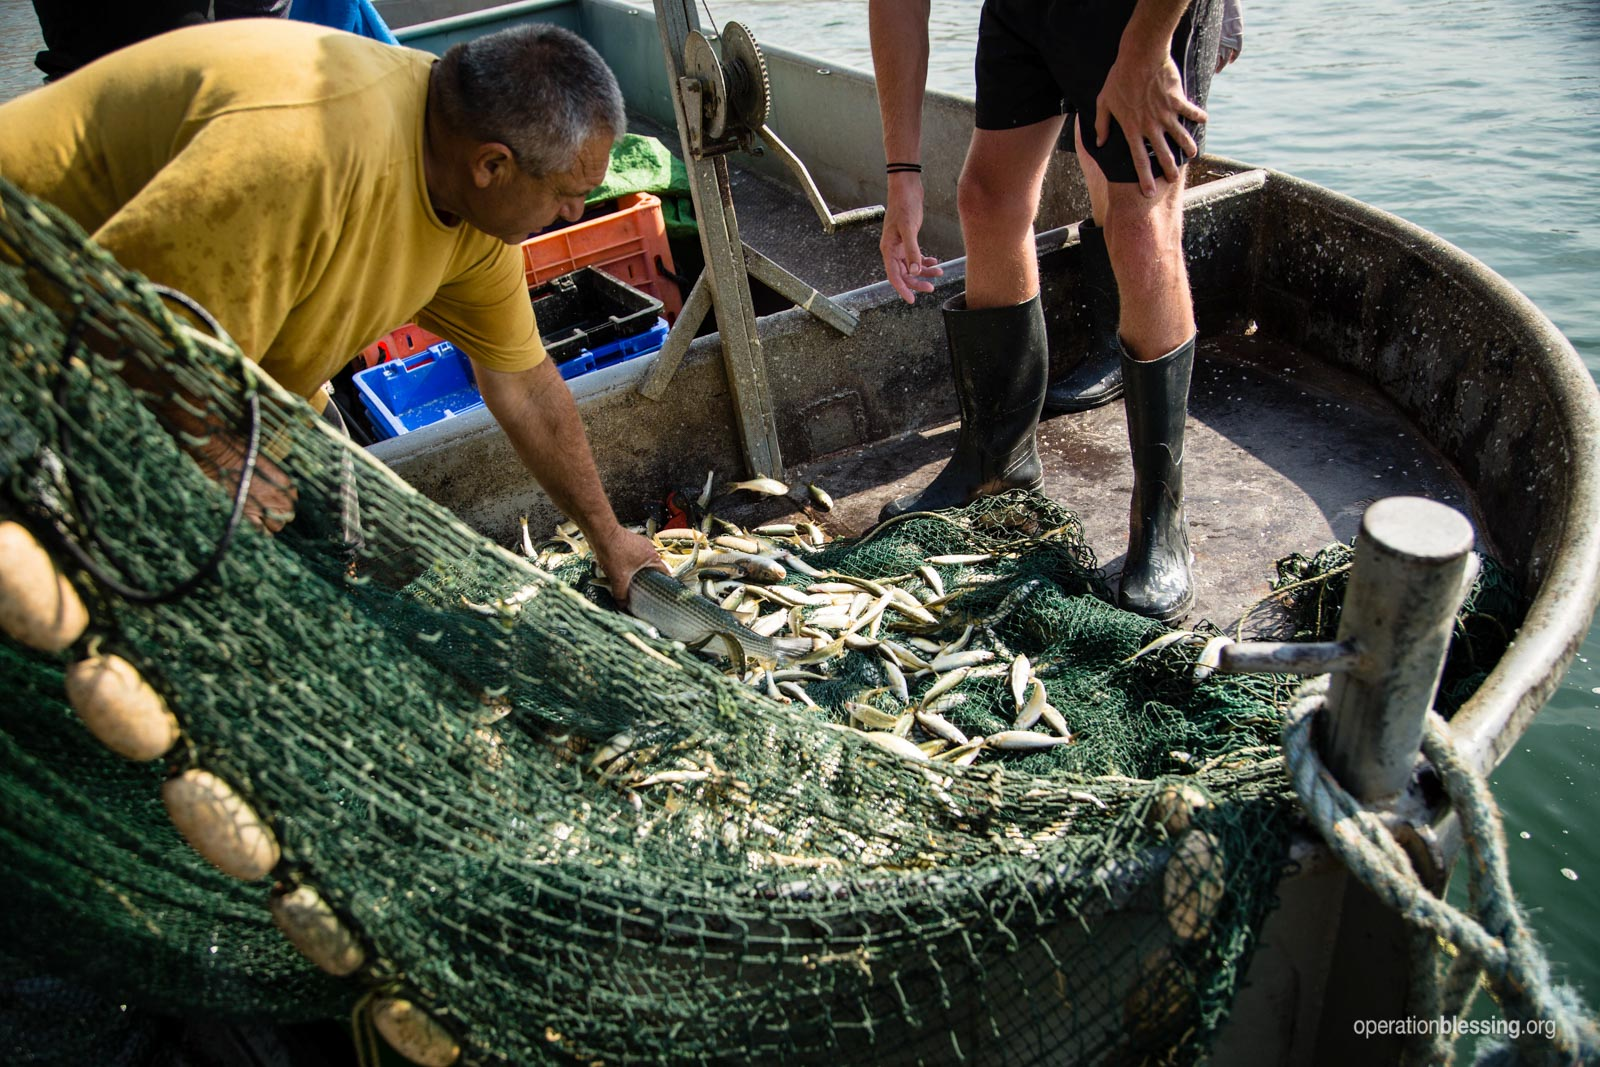 Fishermen sort through the catch in a net.